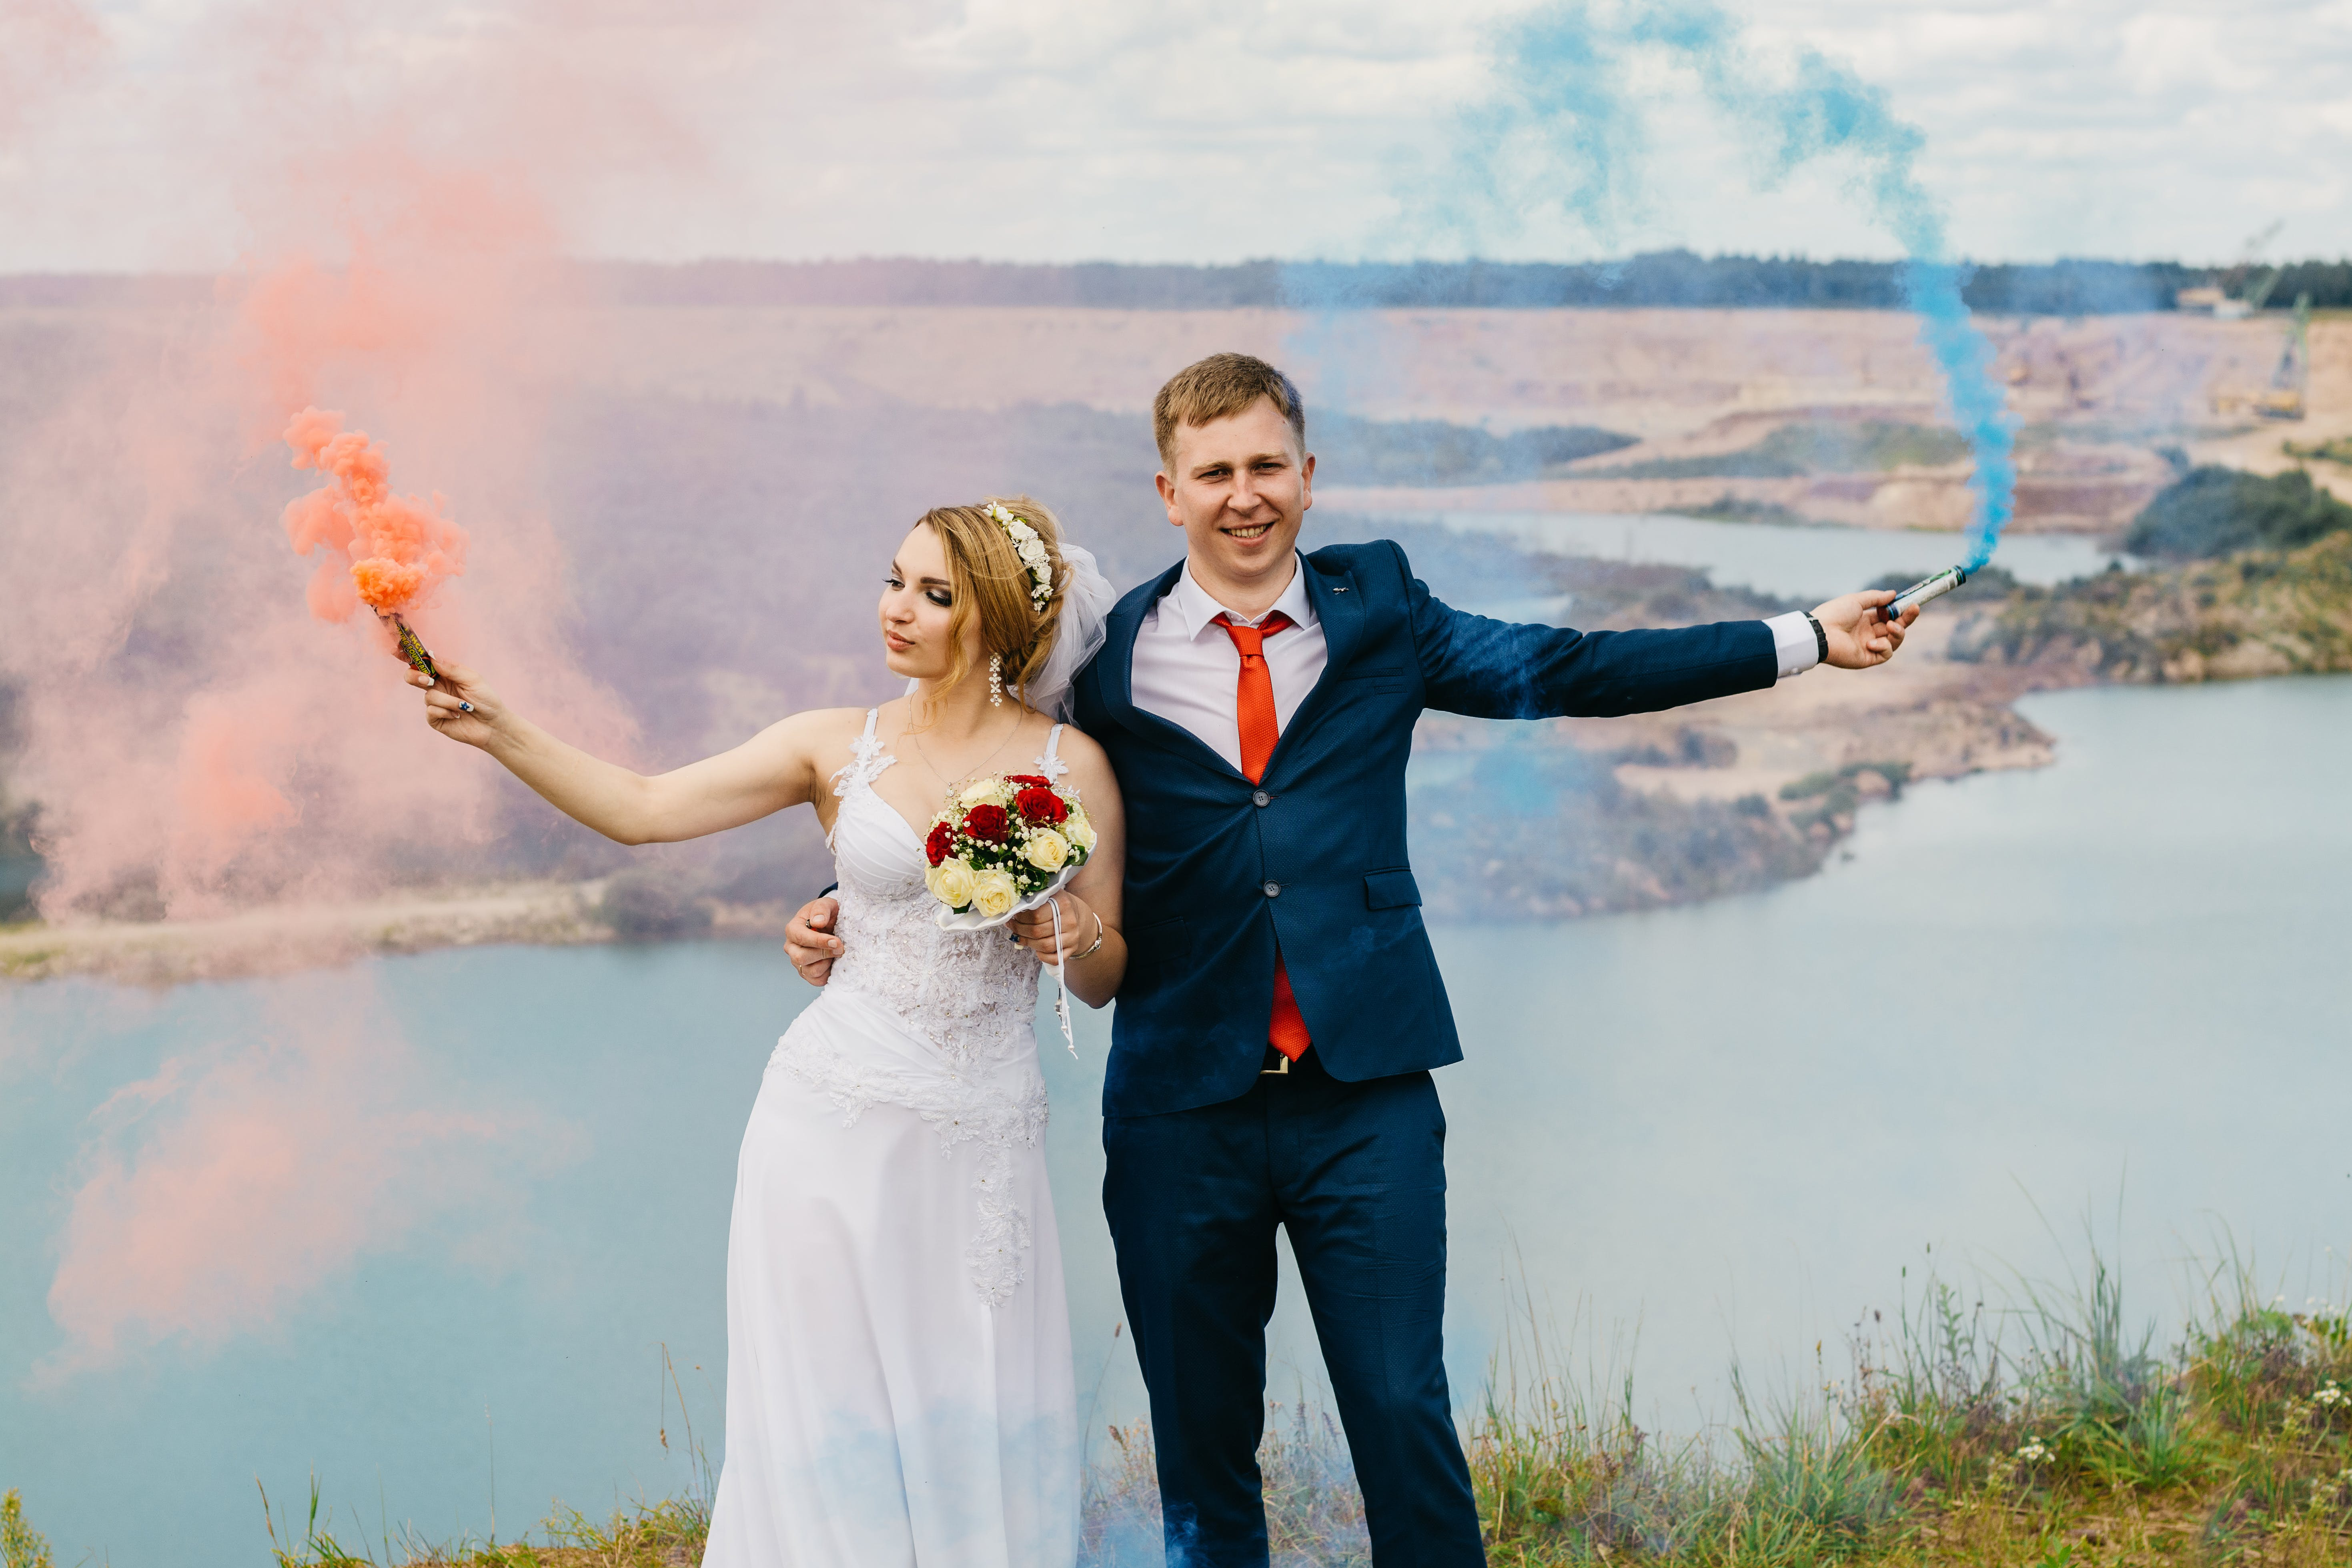 Bride And Groom Holding Smoke Bombs Near Body Of Water